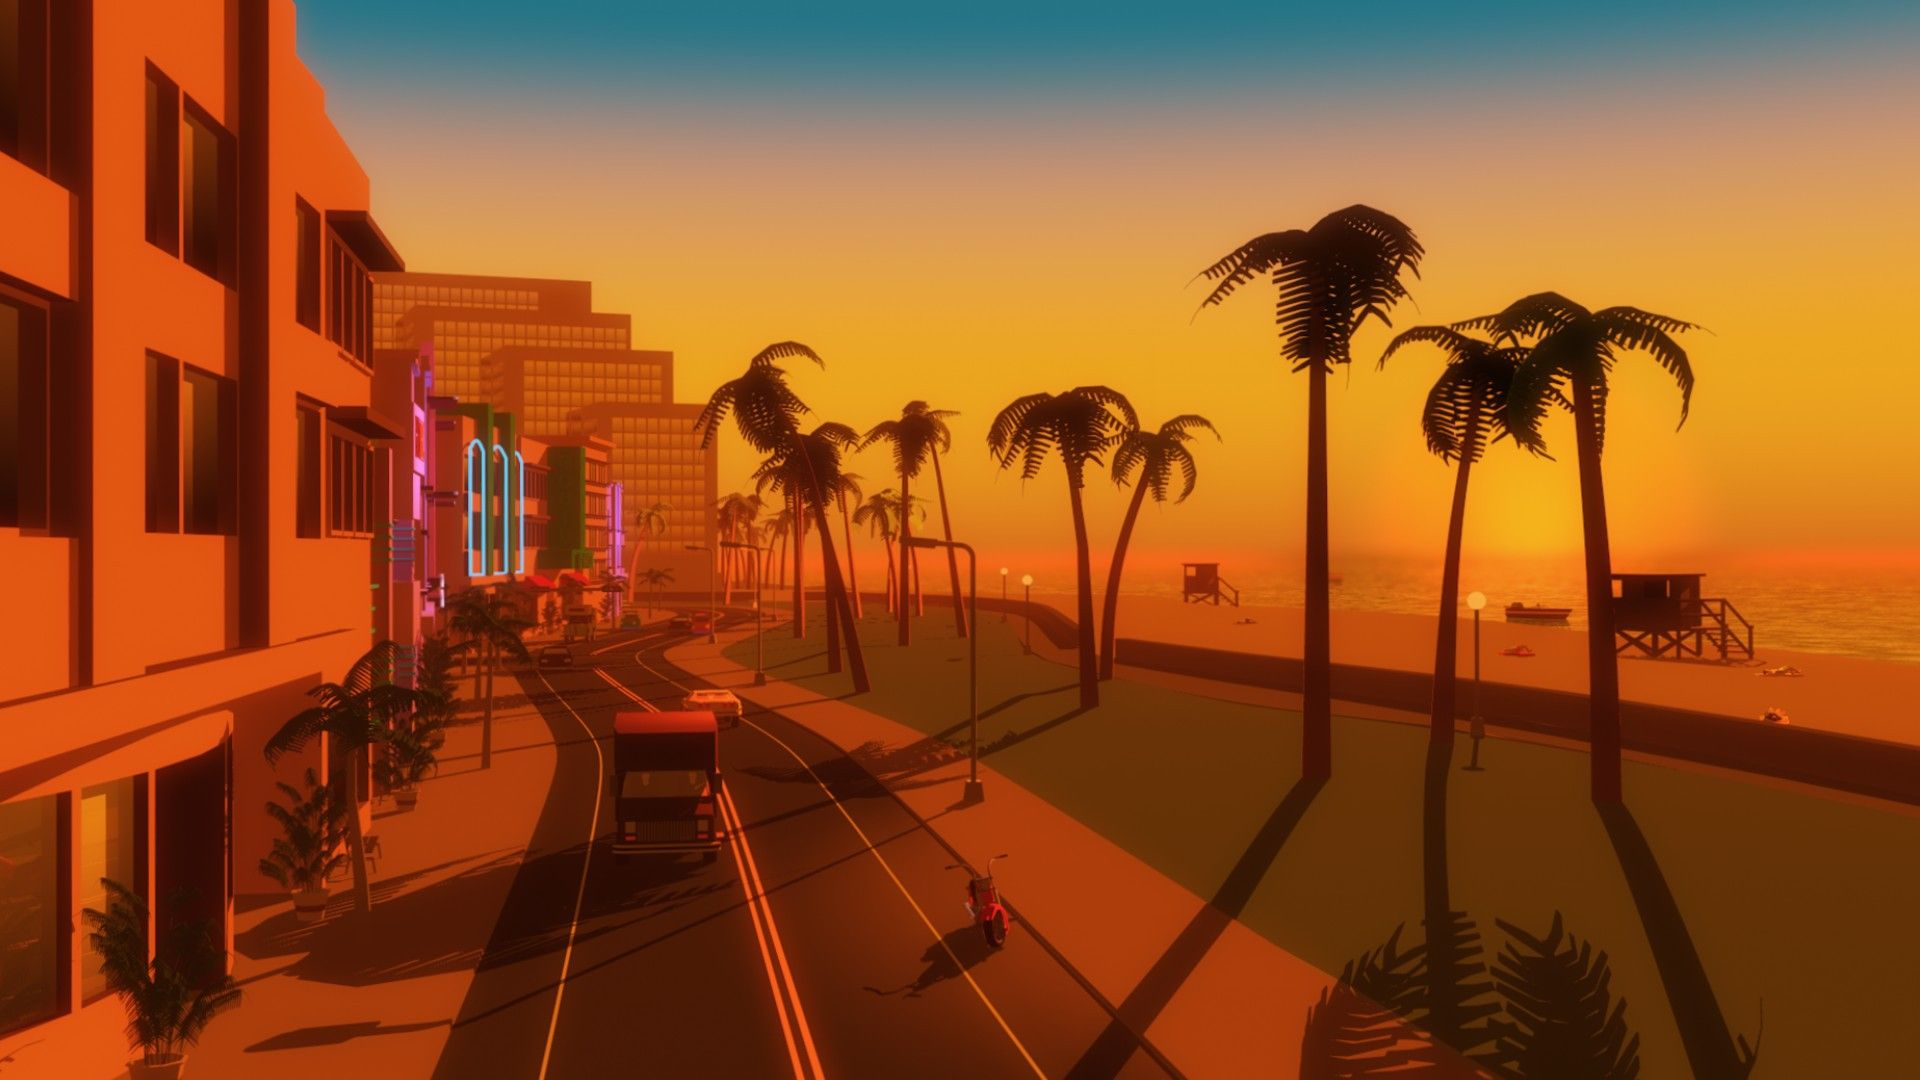 gta: vice city, cheat codes, kode, cheat codes, kodet, kode, gta vice city, playstation, xbox, pc,